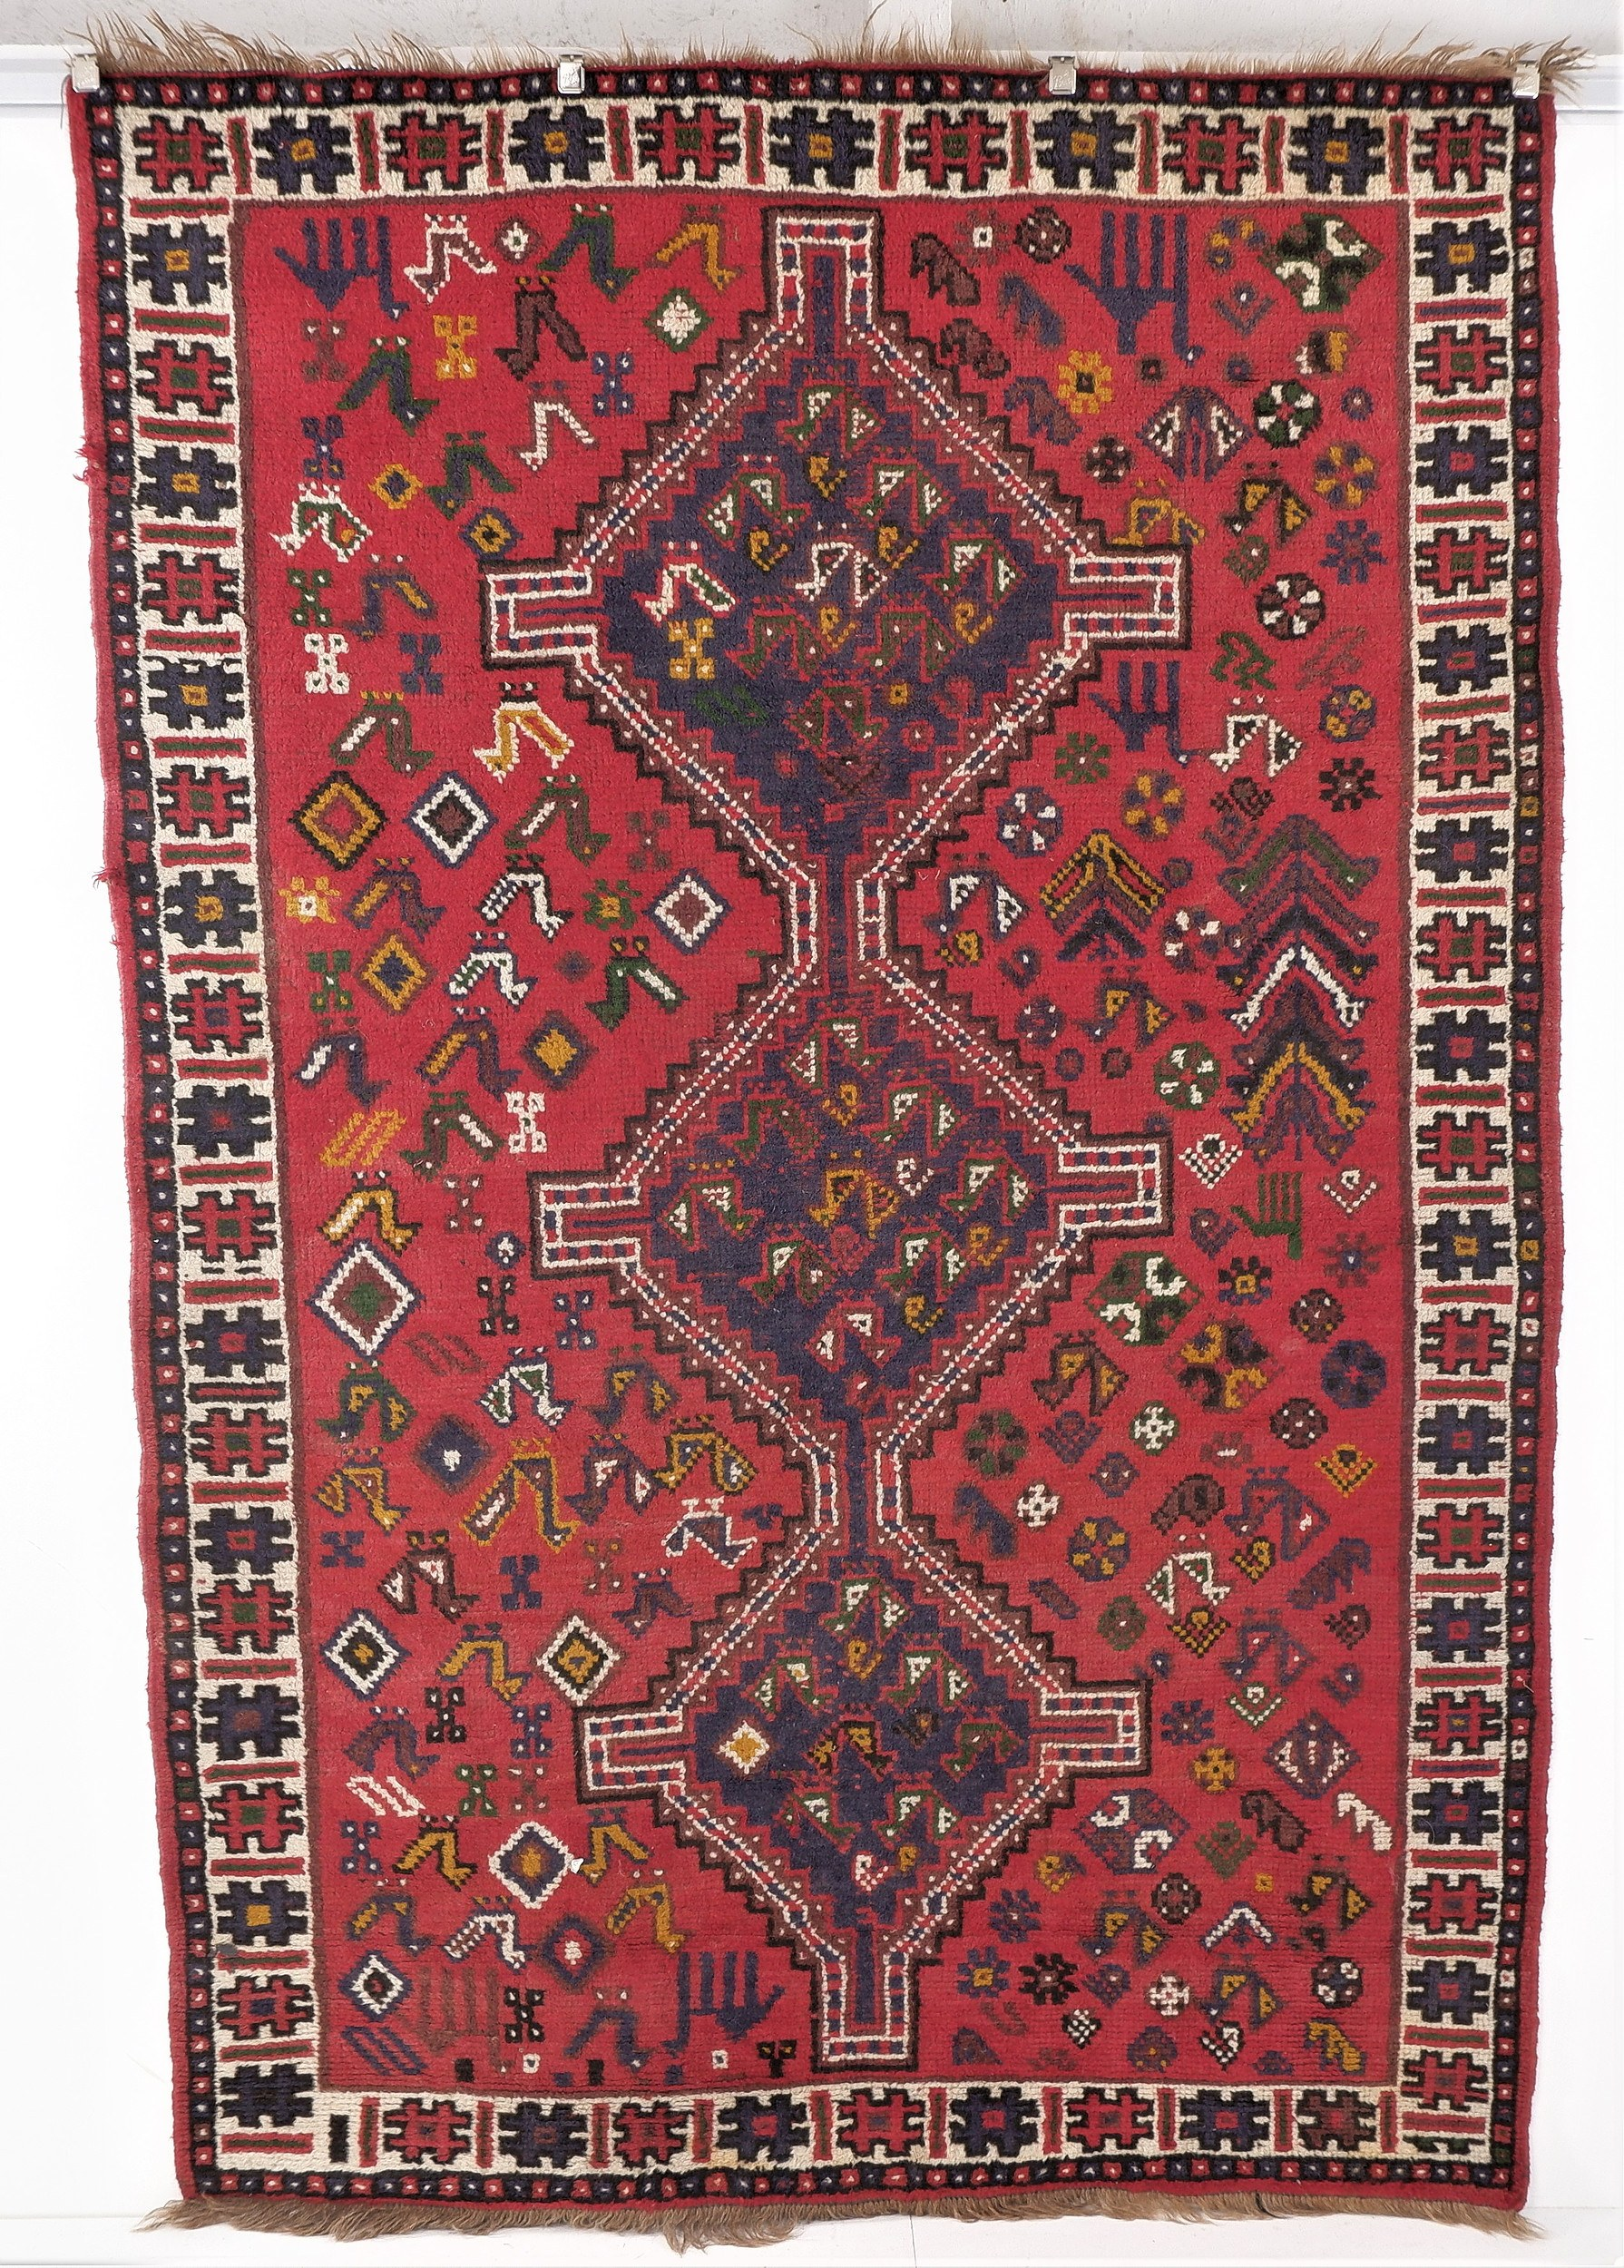 'Vintage Persian Qashqai Hand Knotted Wool Rug '